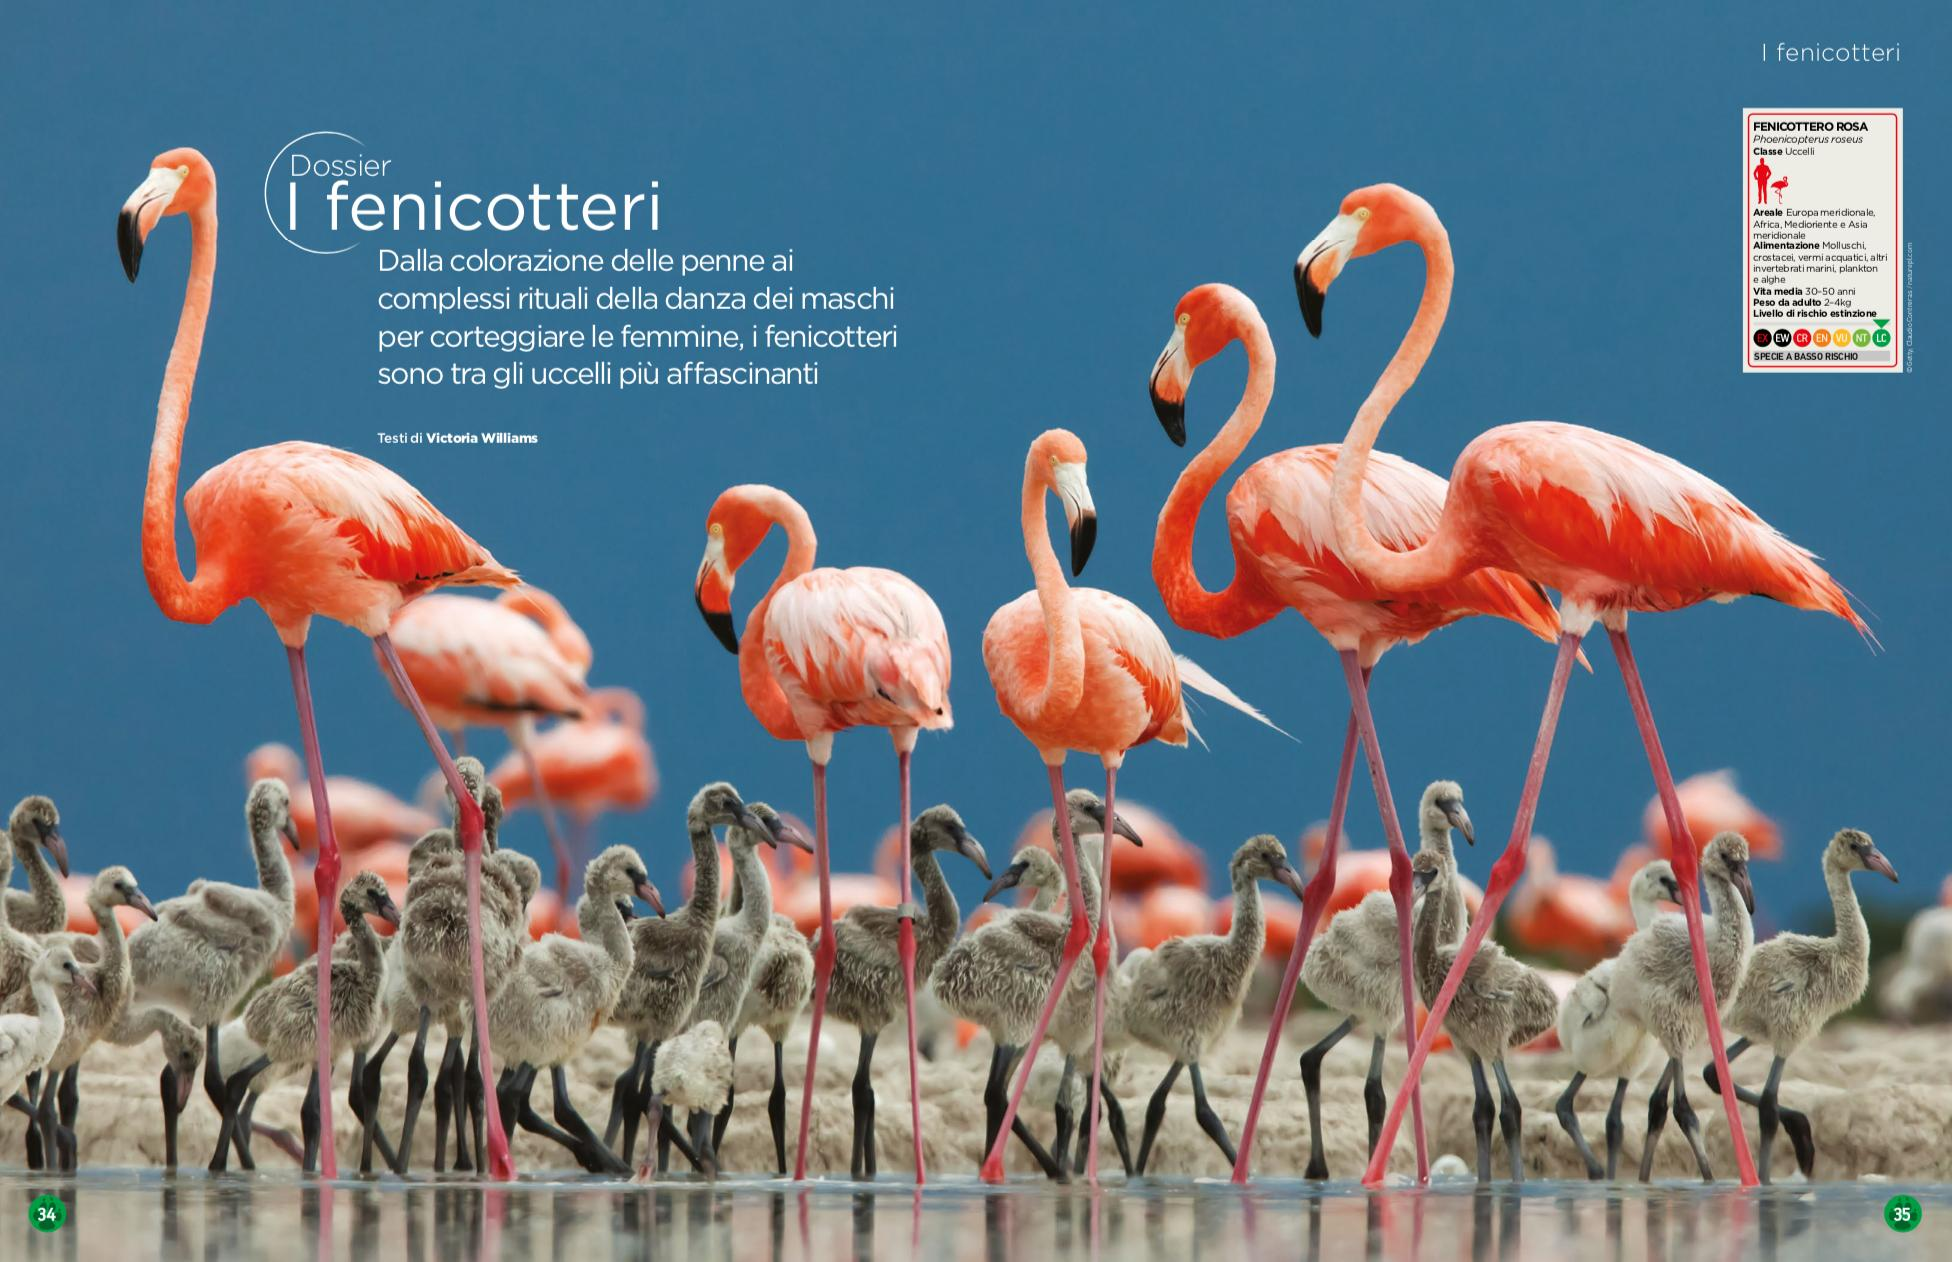 Nature_and_animals_fenicotteri_fenicottero.png